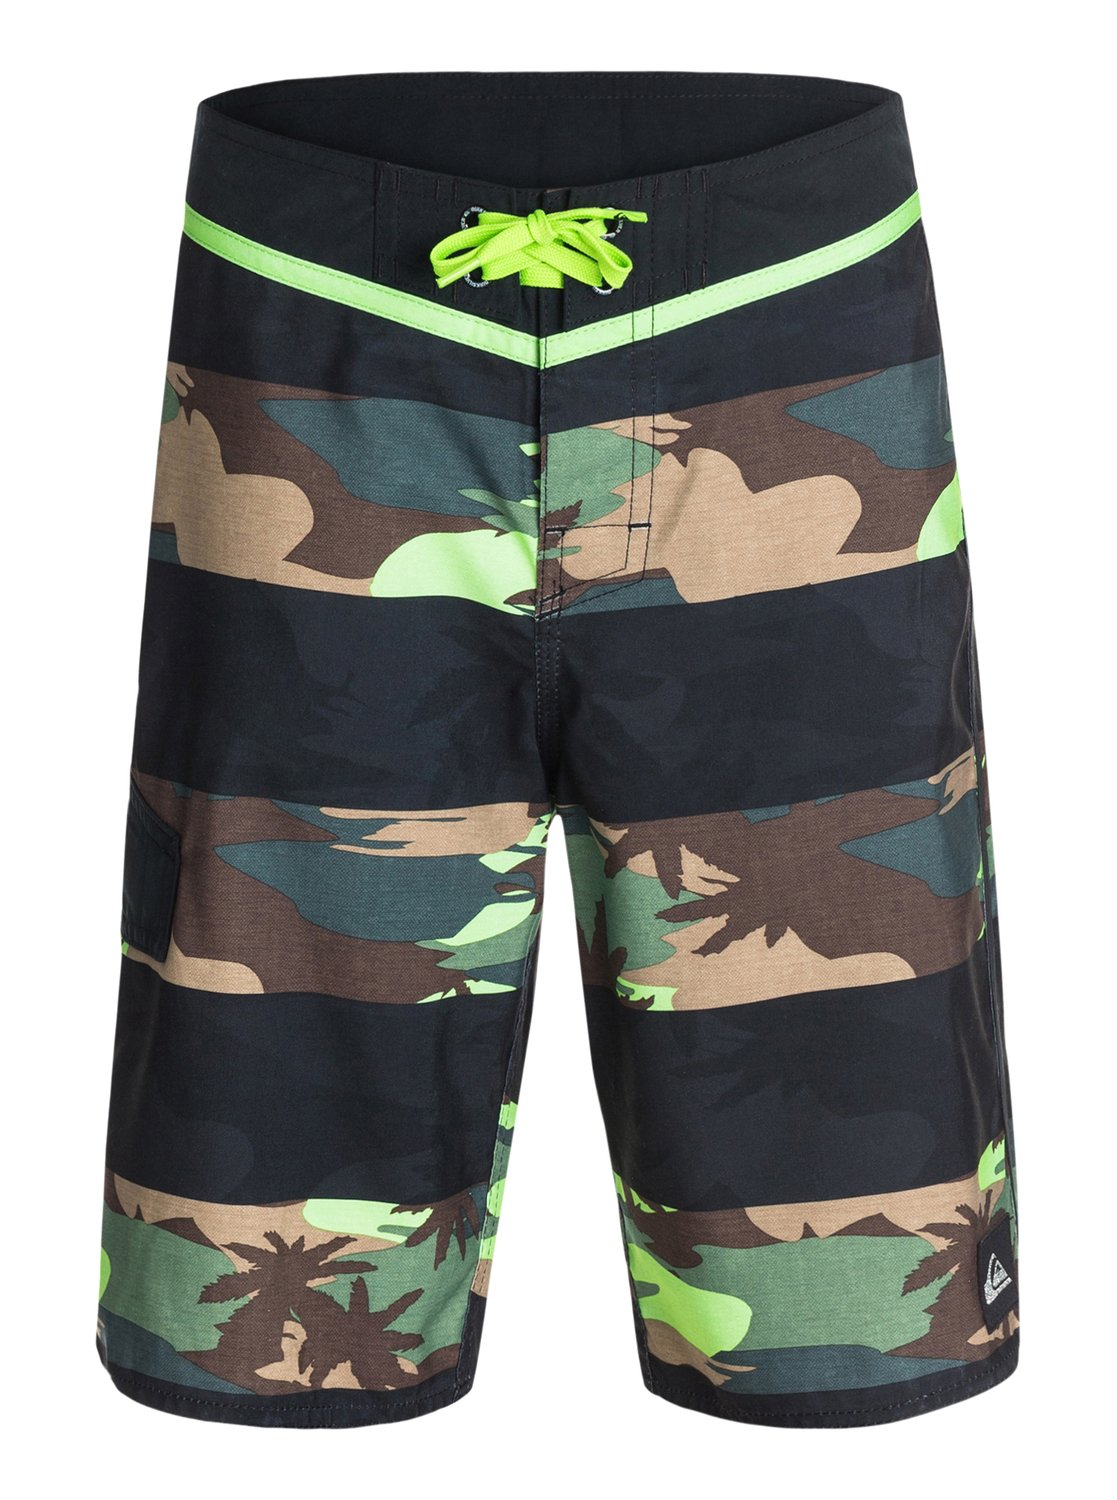 09c40ac8fe Toddlers Brigg Camo Boardshorts 40445037 | Quiksilver